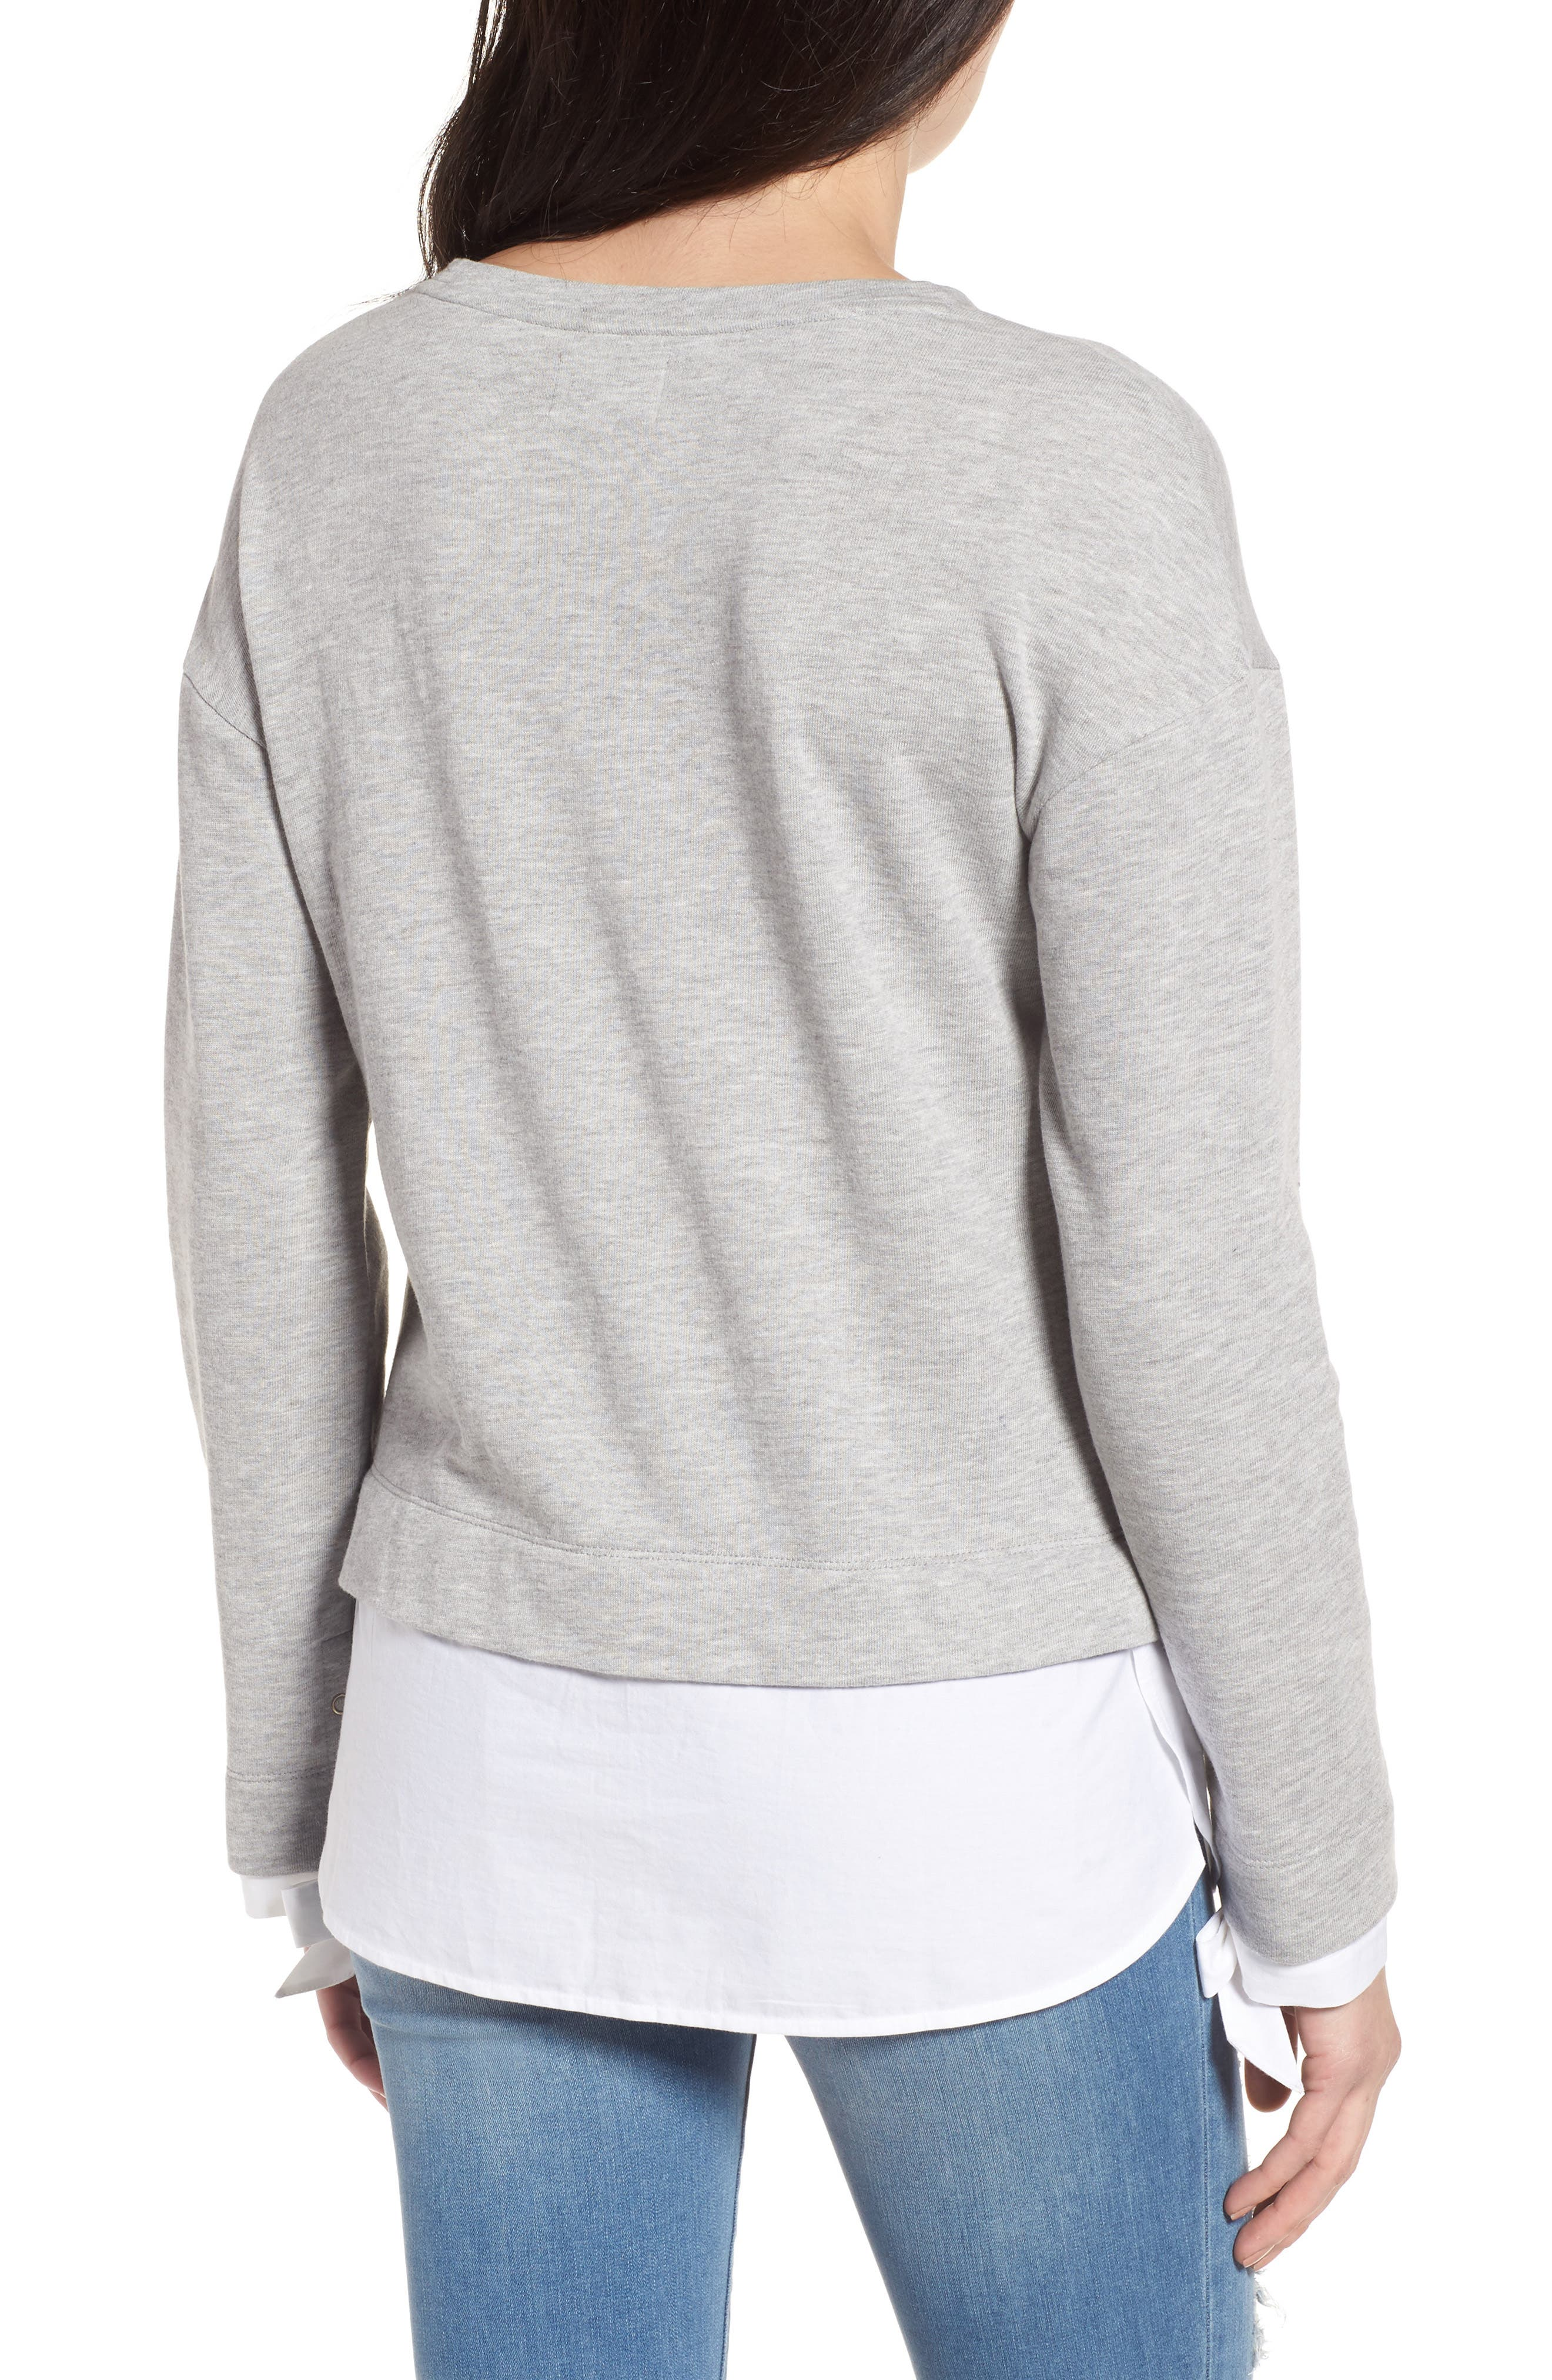 Woven Trim Layered Sweatshirt,                             Alternate thumbnail 2, color,                             030